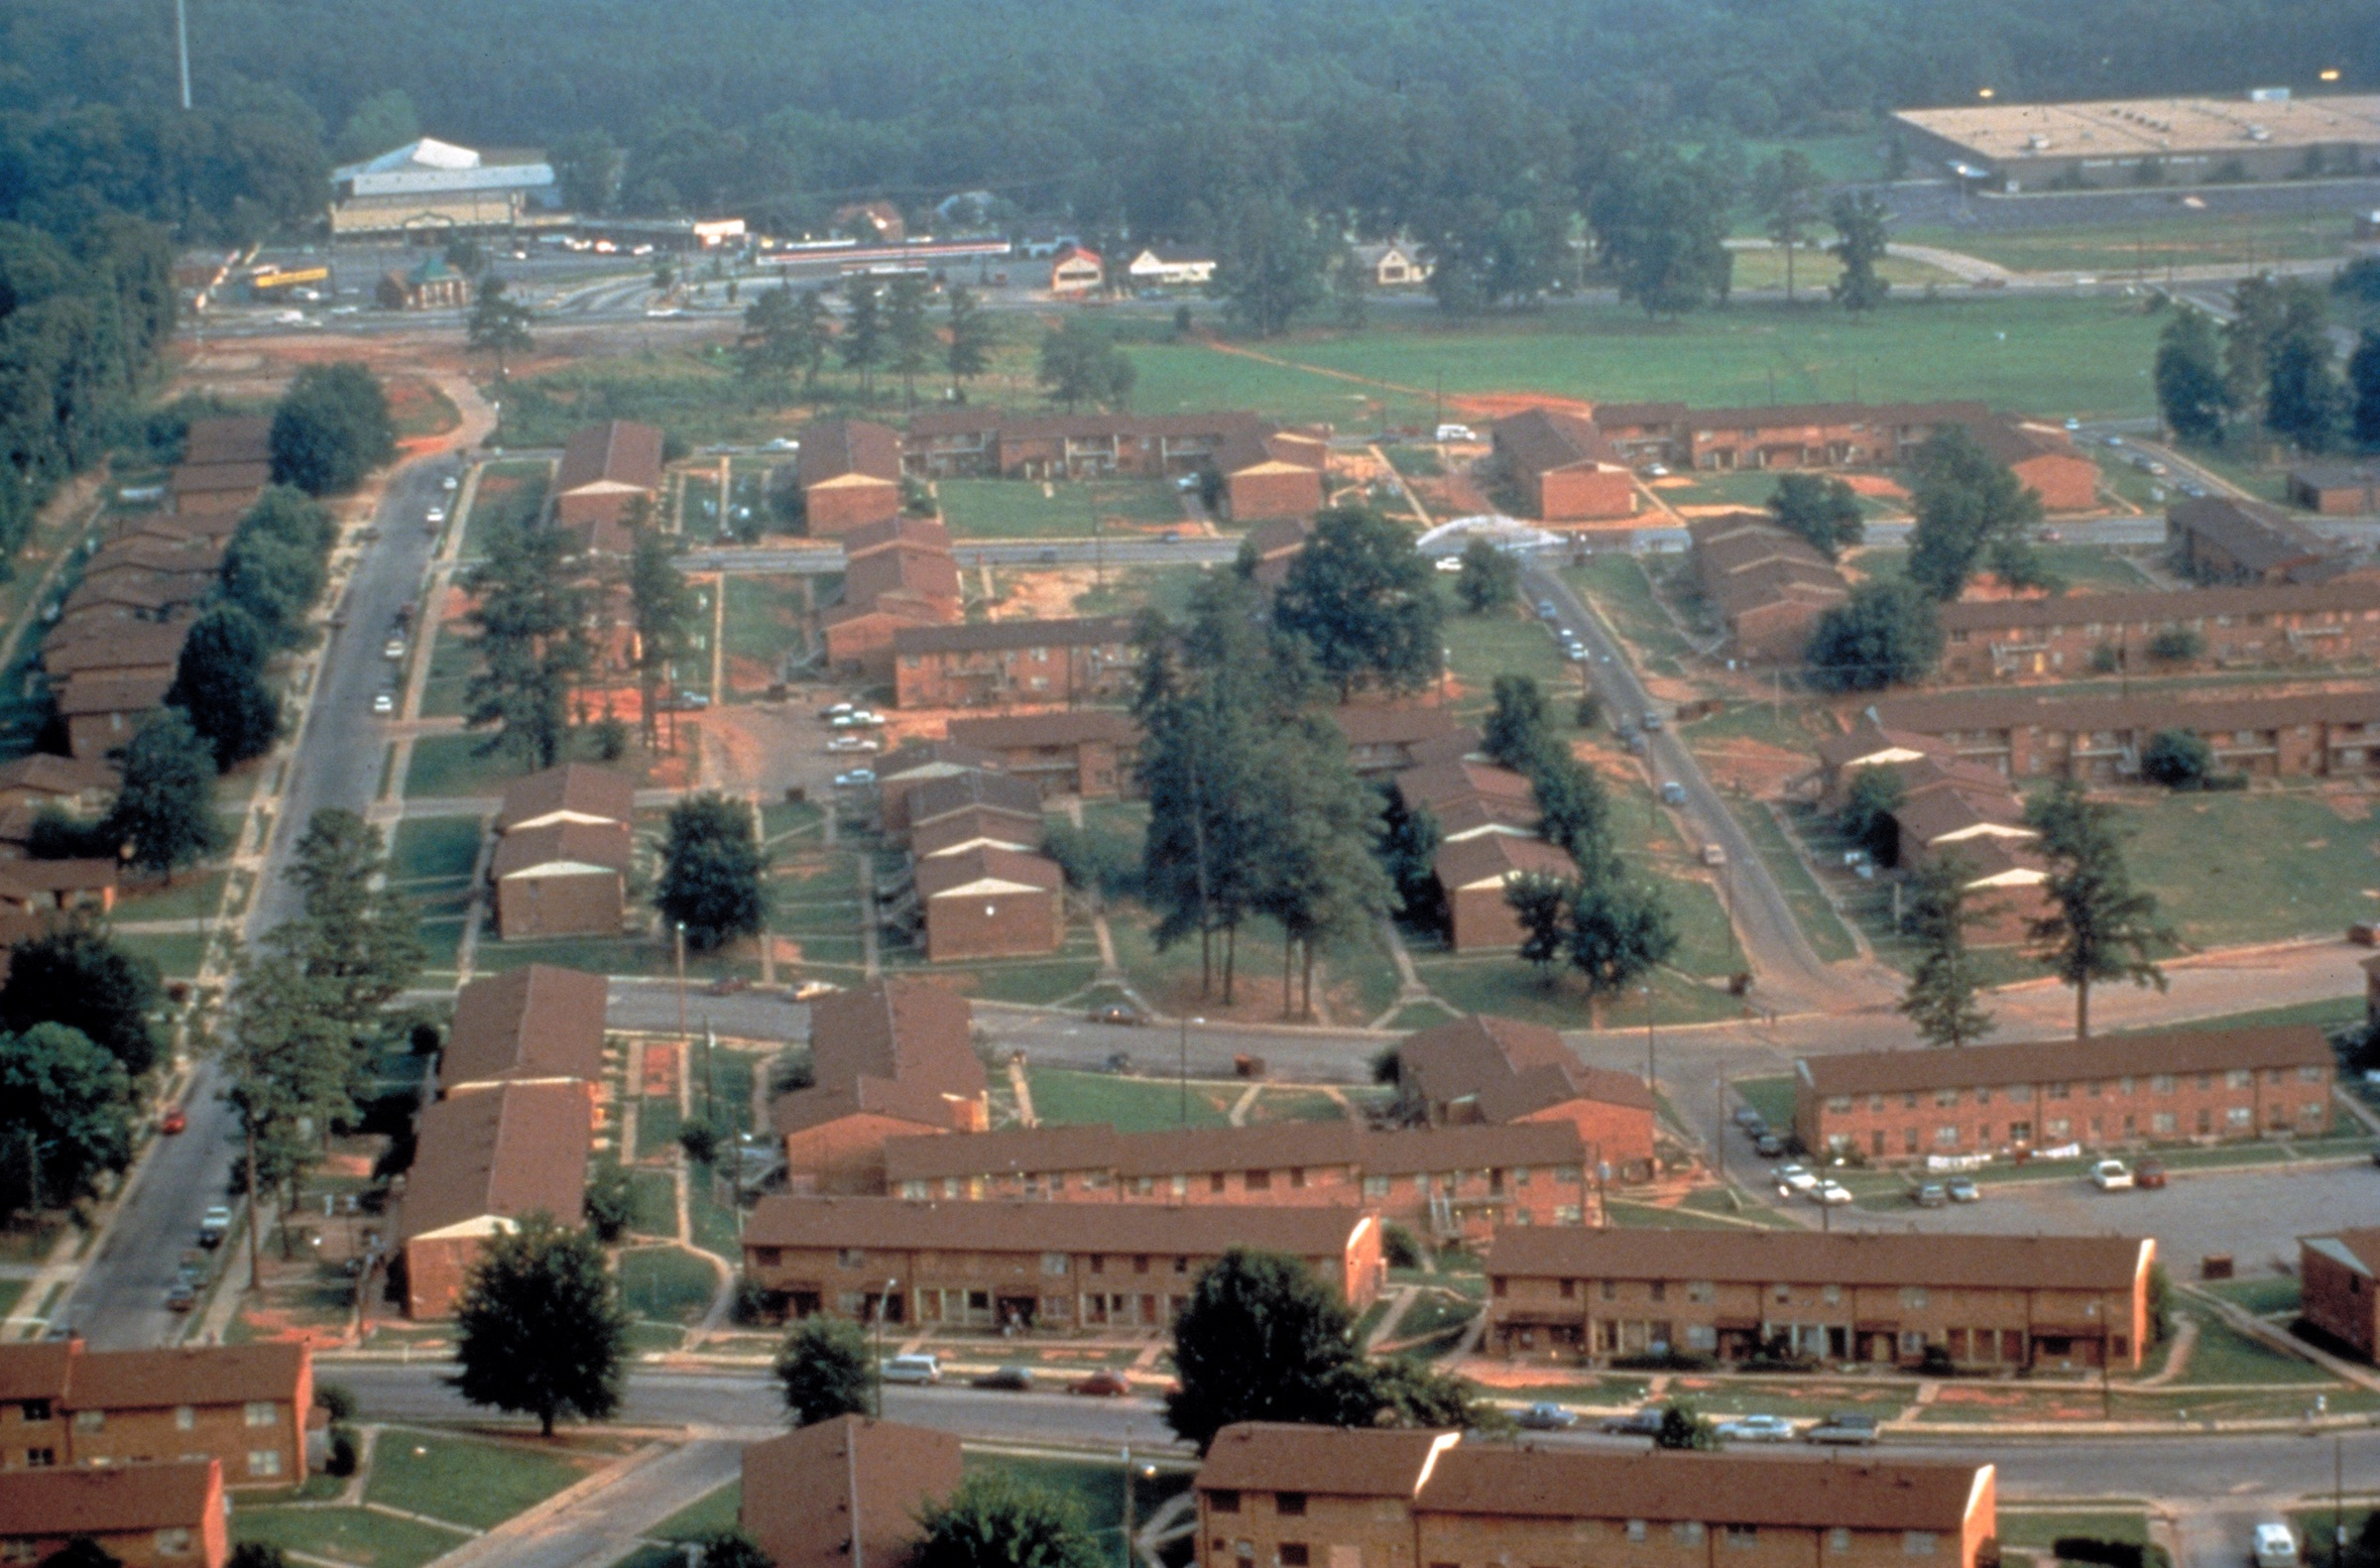 An aerial view of a housing project in Atlanta from the 1990s.